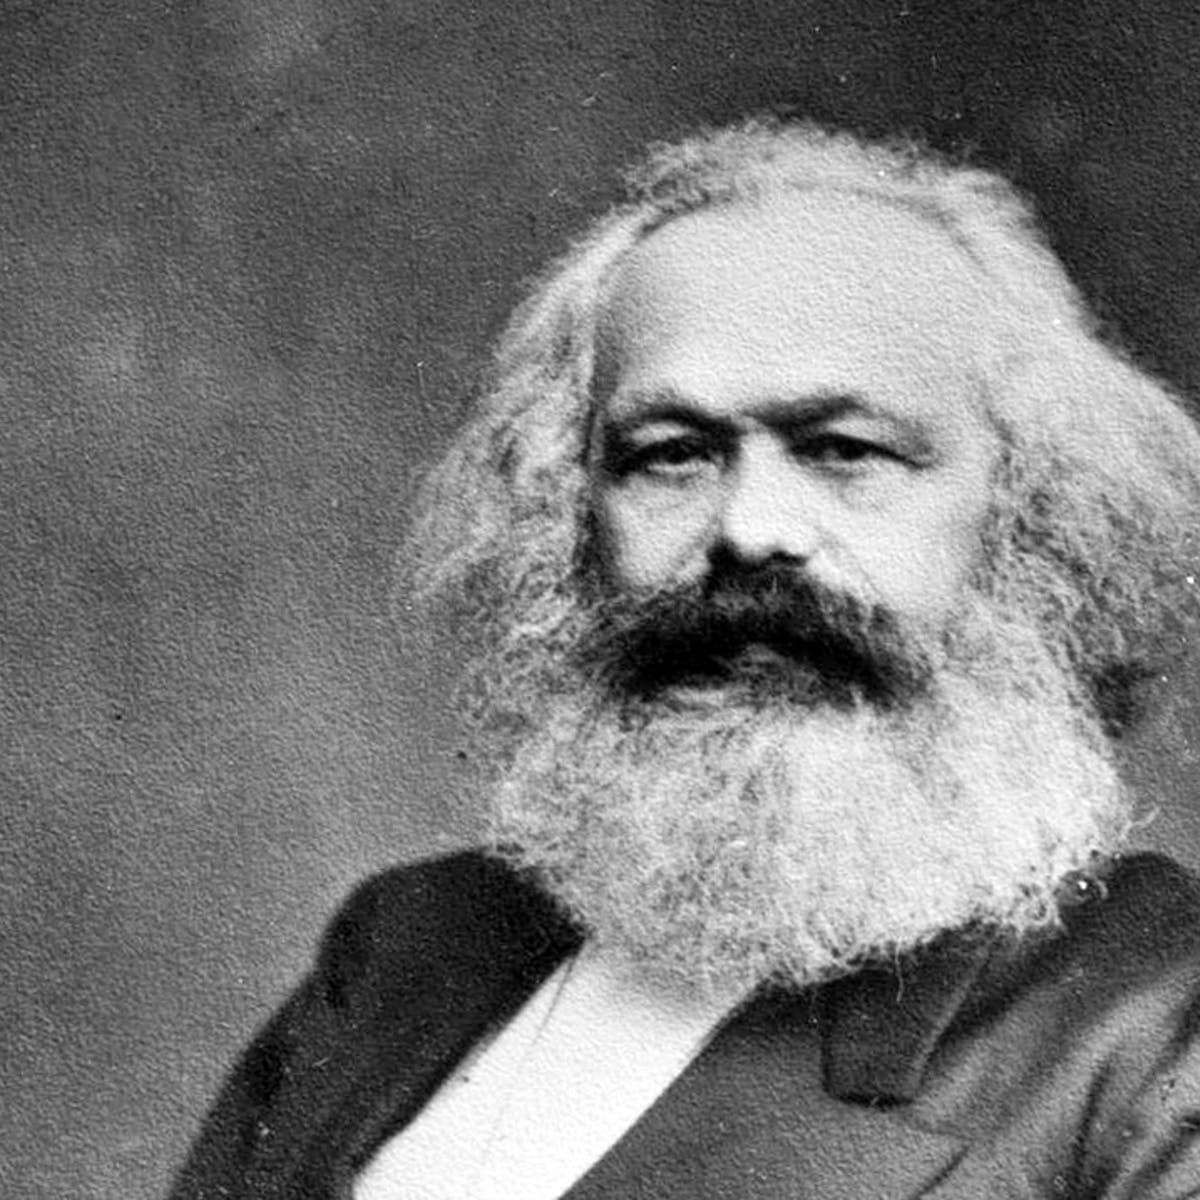 Karl Marx: ten things to read if you want to understand him